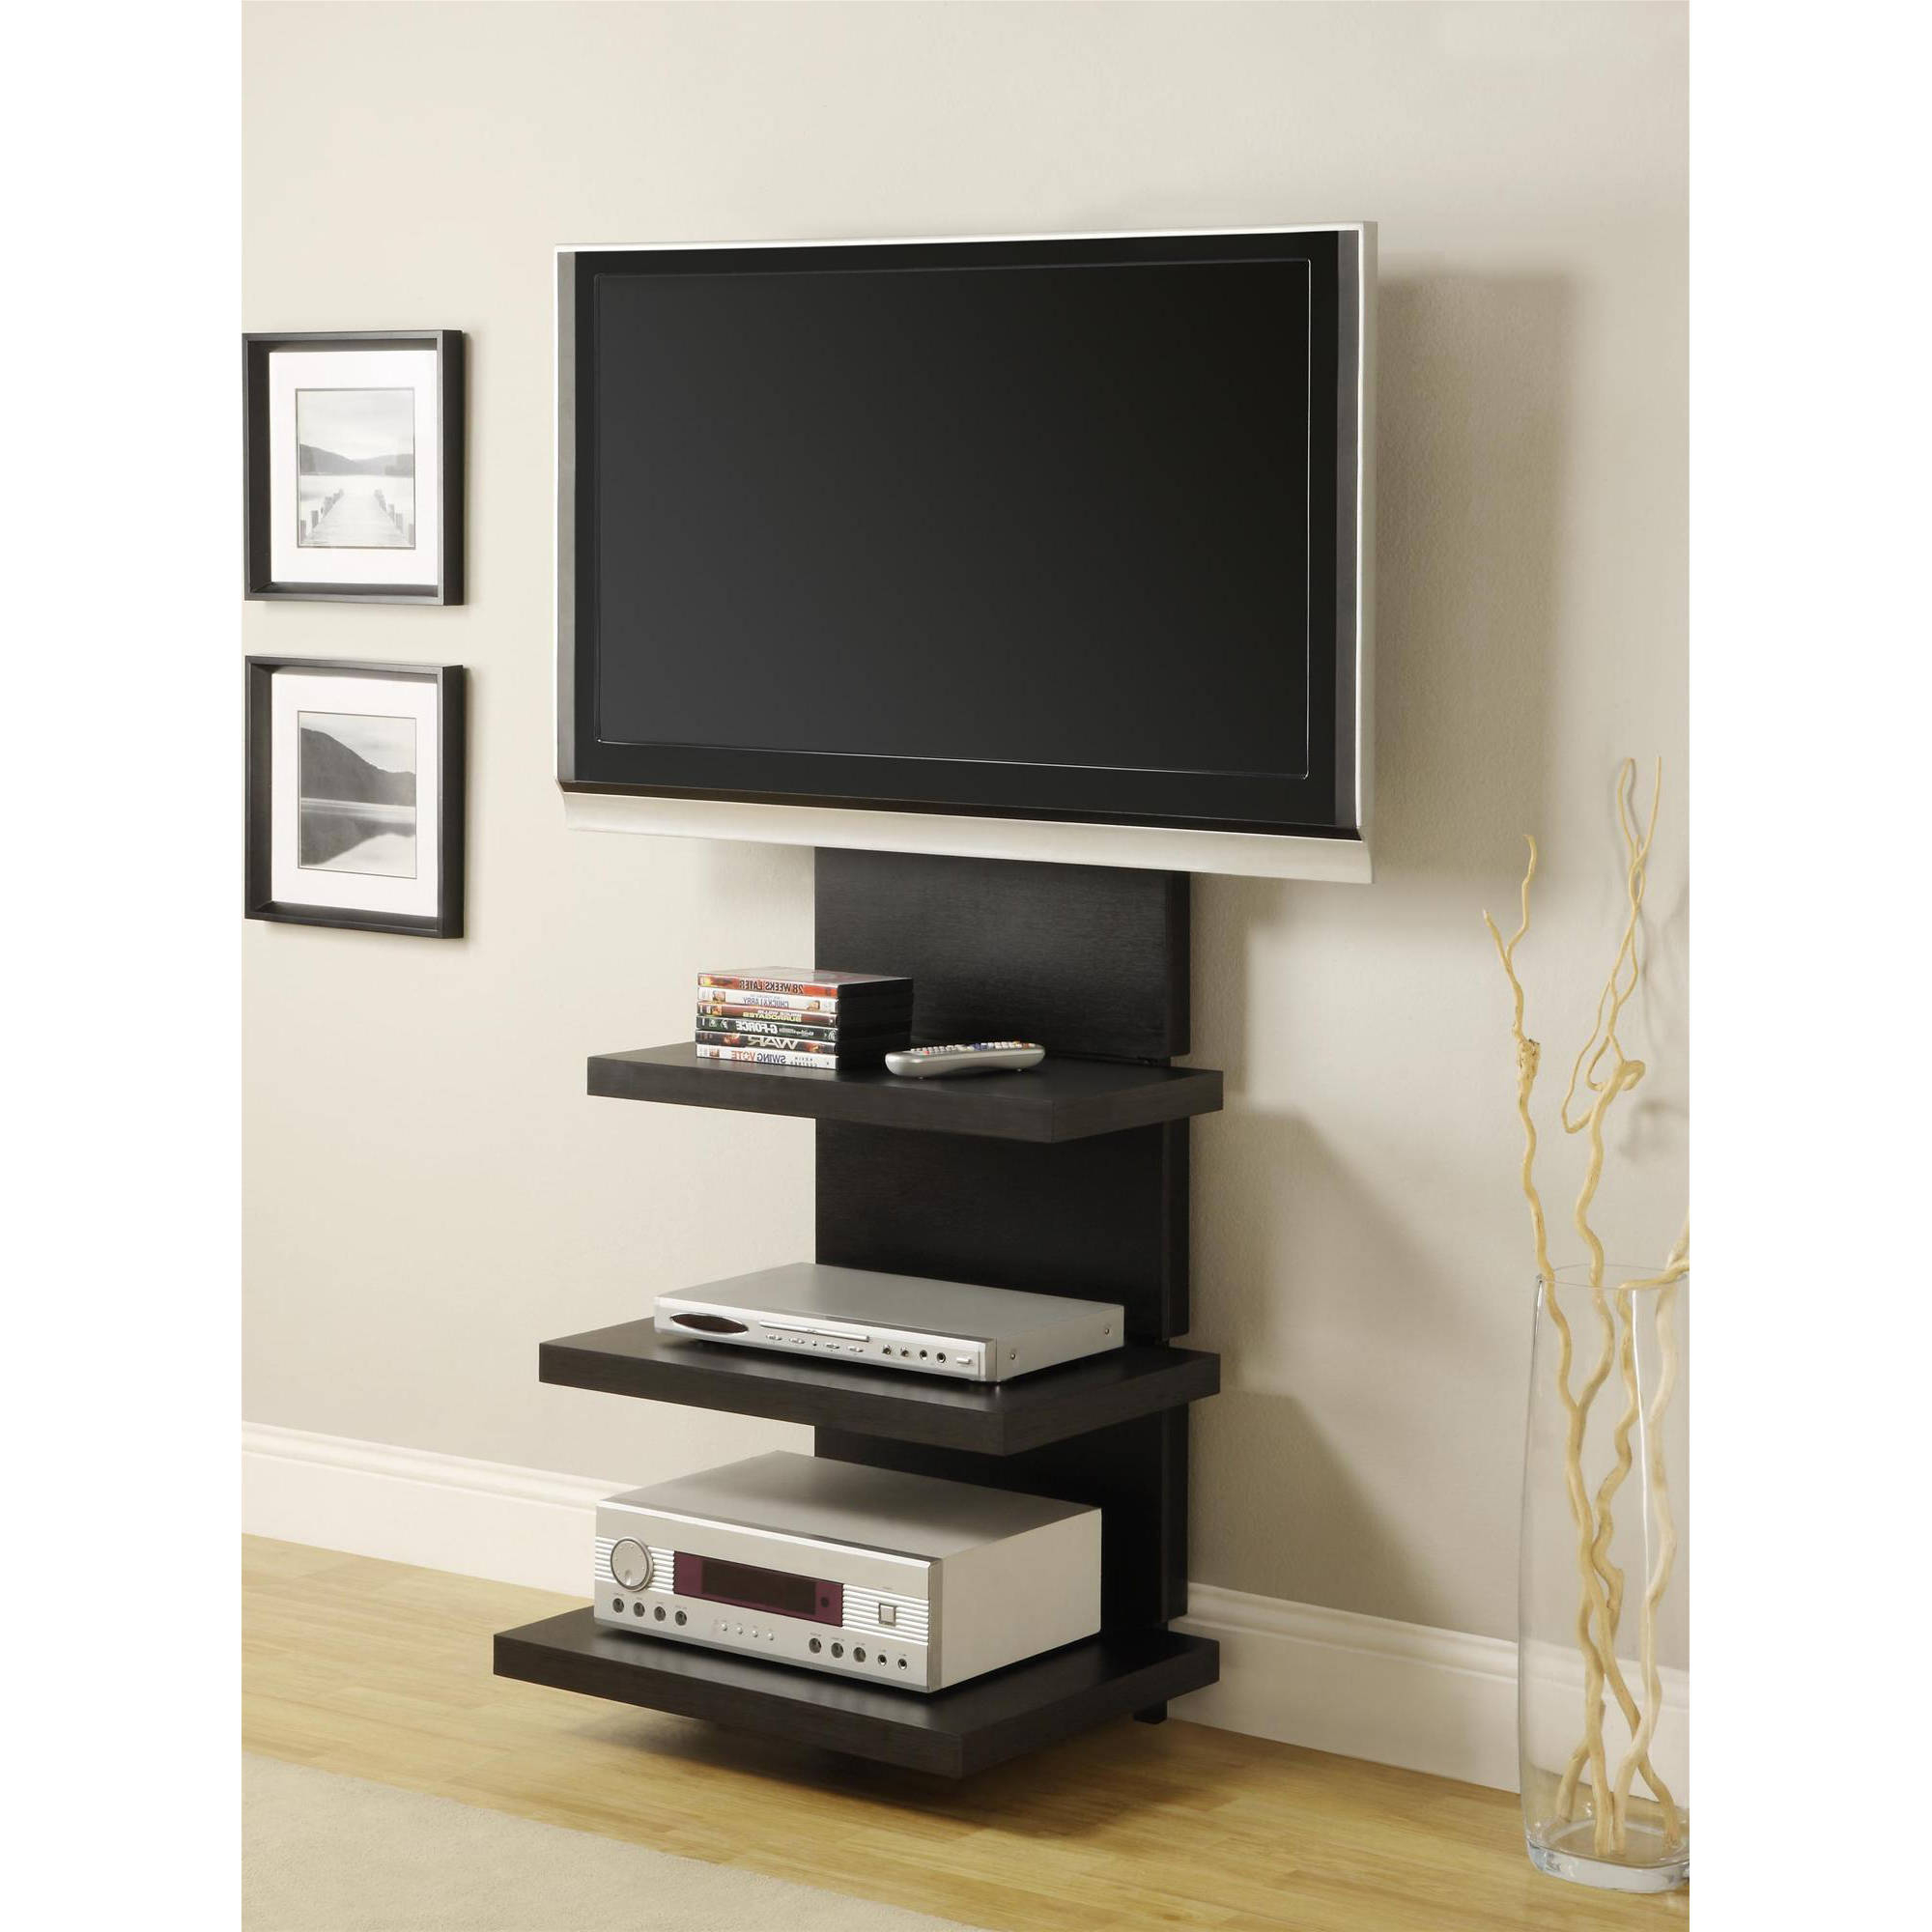 "2018 Tv Stands With Mount Within Altra Wall Mount Tv Stand With 3 Shelves, For Tvs Up To 60"" (Gallery 3 of 20)"